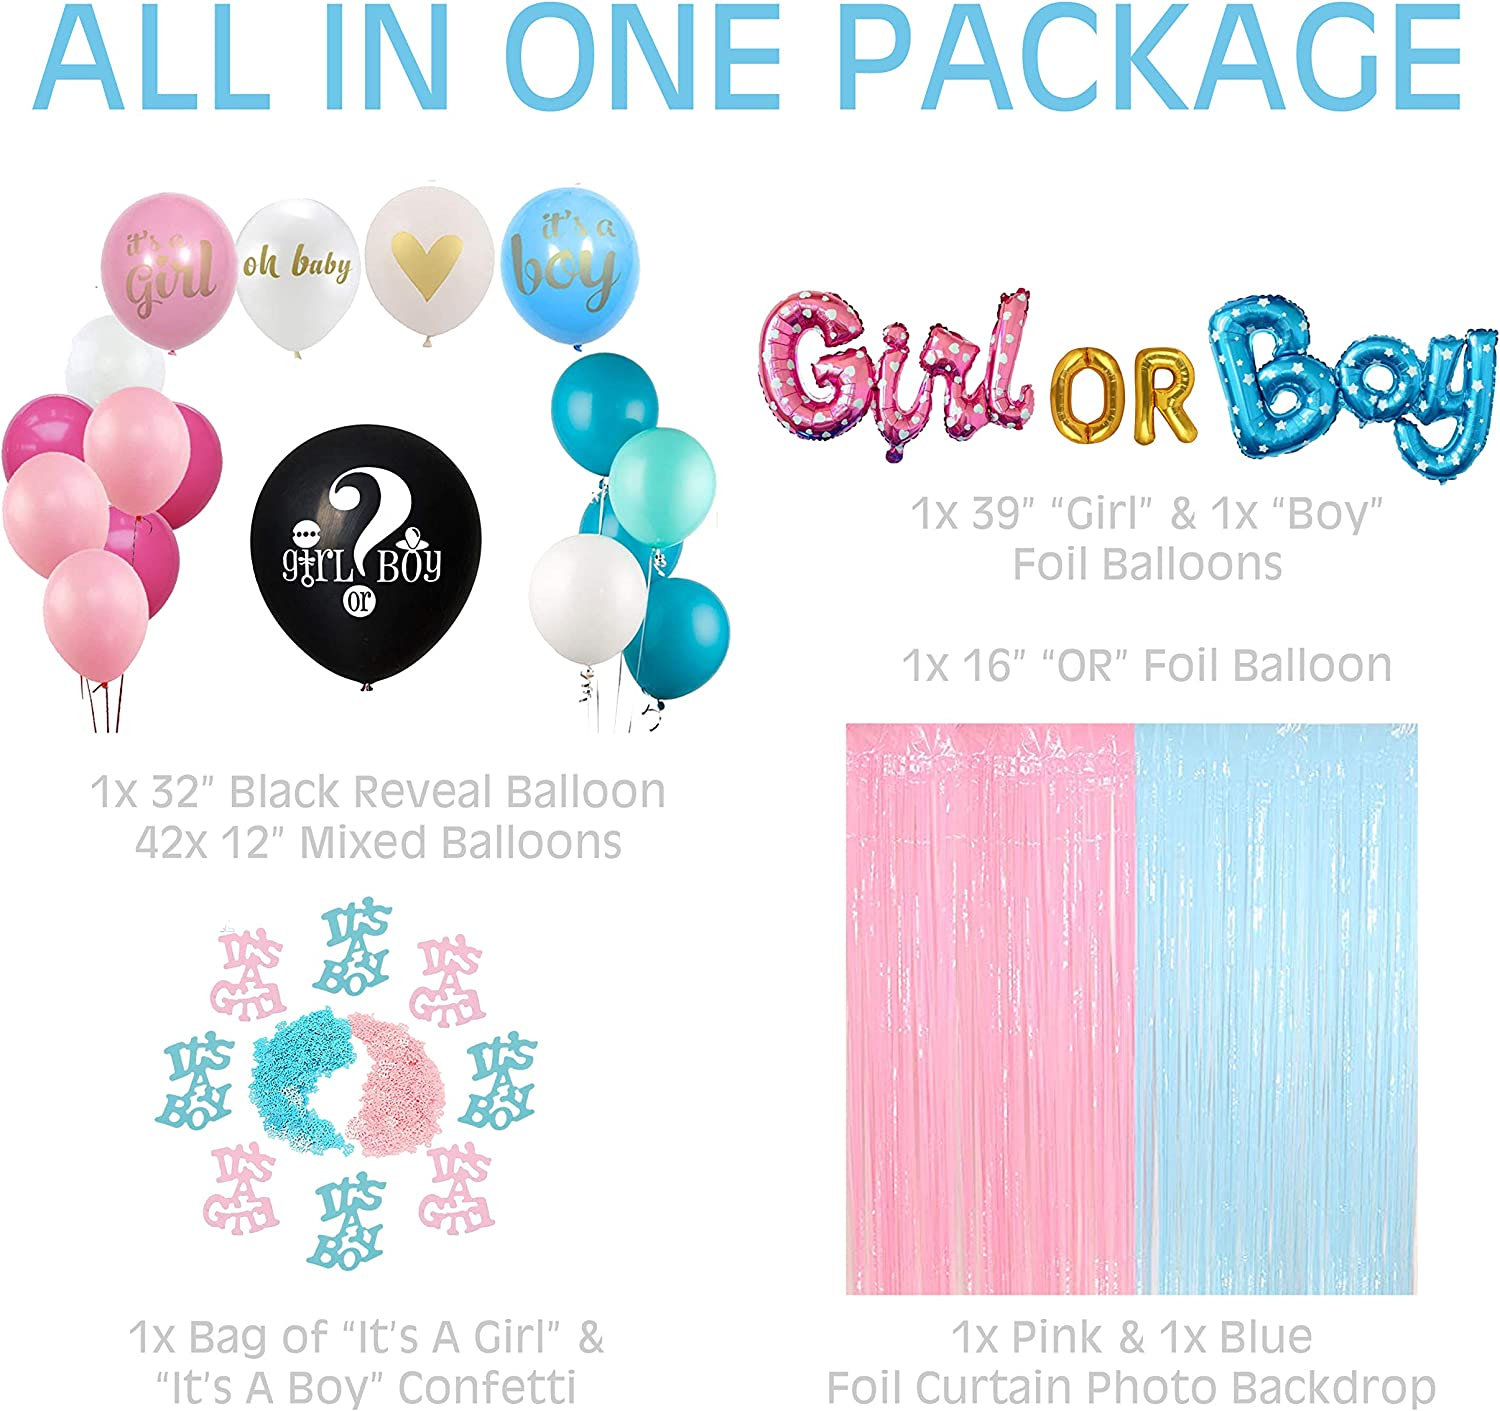 Foil Curtain Foil Balloons Baby Gender Reveal Gender Reveal Decorations Boy or Girl Gender Reveal Kit Includes Boy or Girl Balloon UrbanRed Gender Reveal Party Supplies Baby Reveal